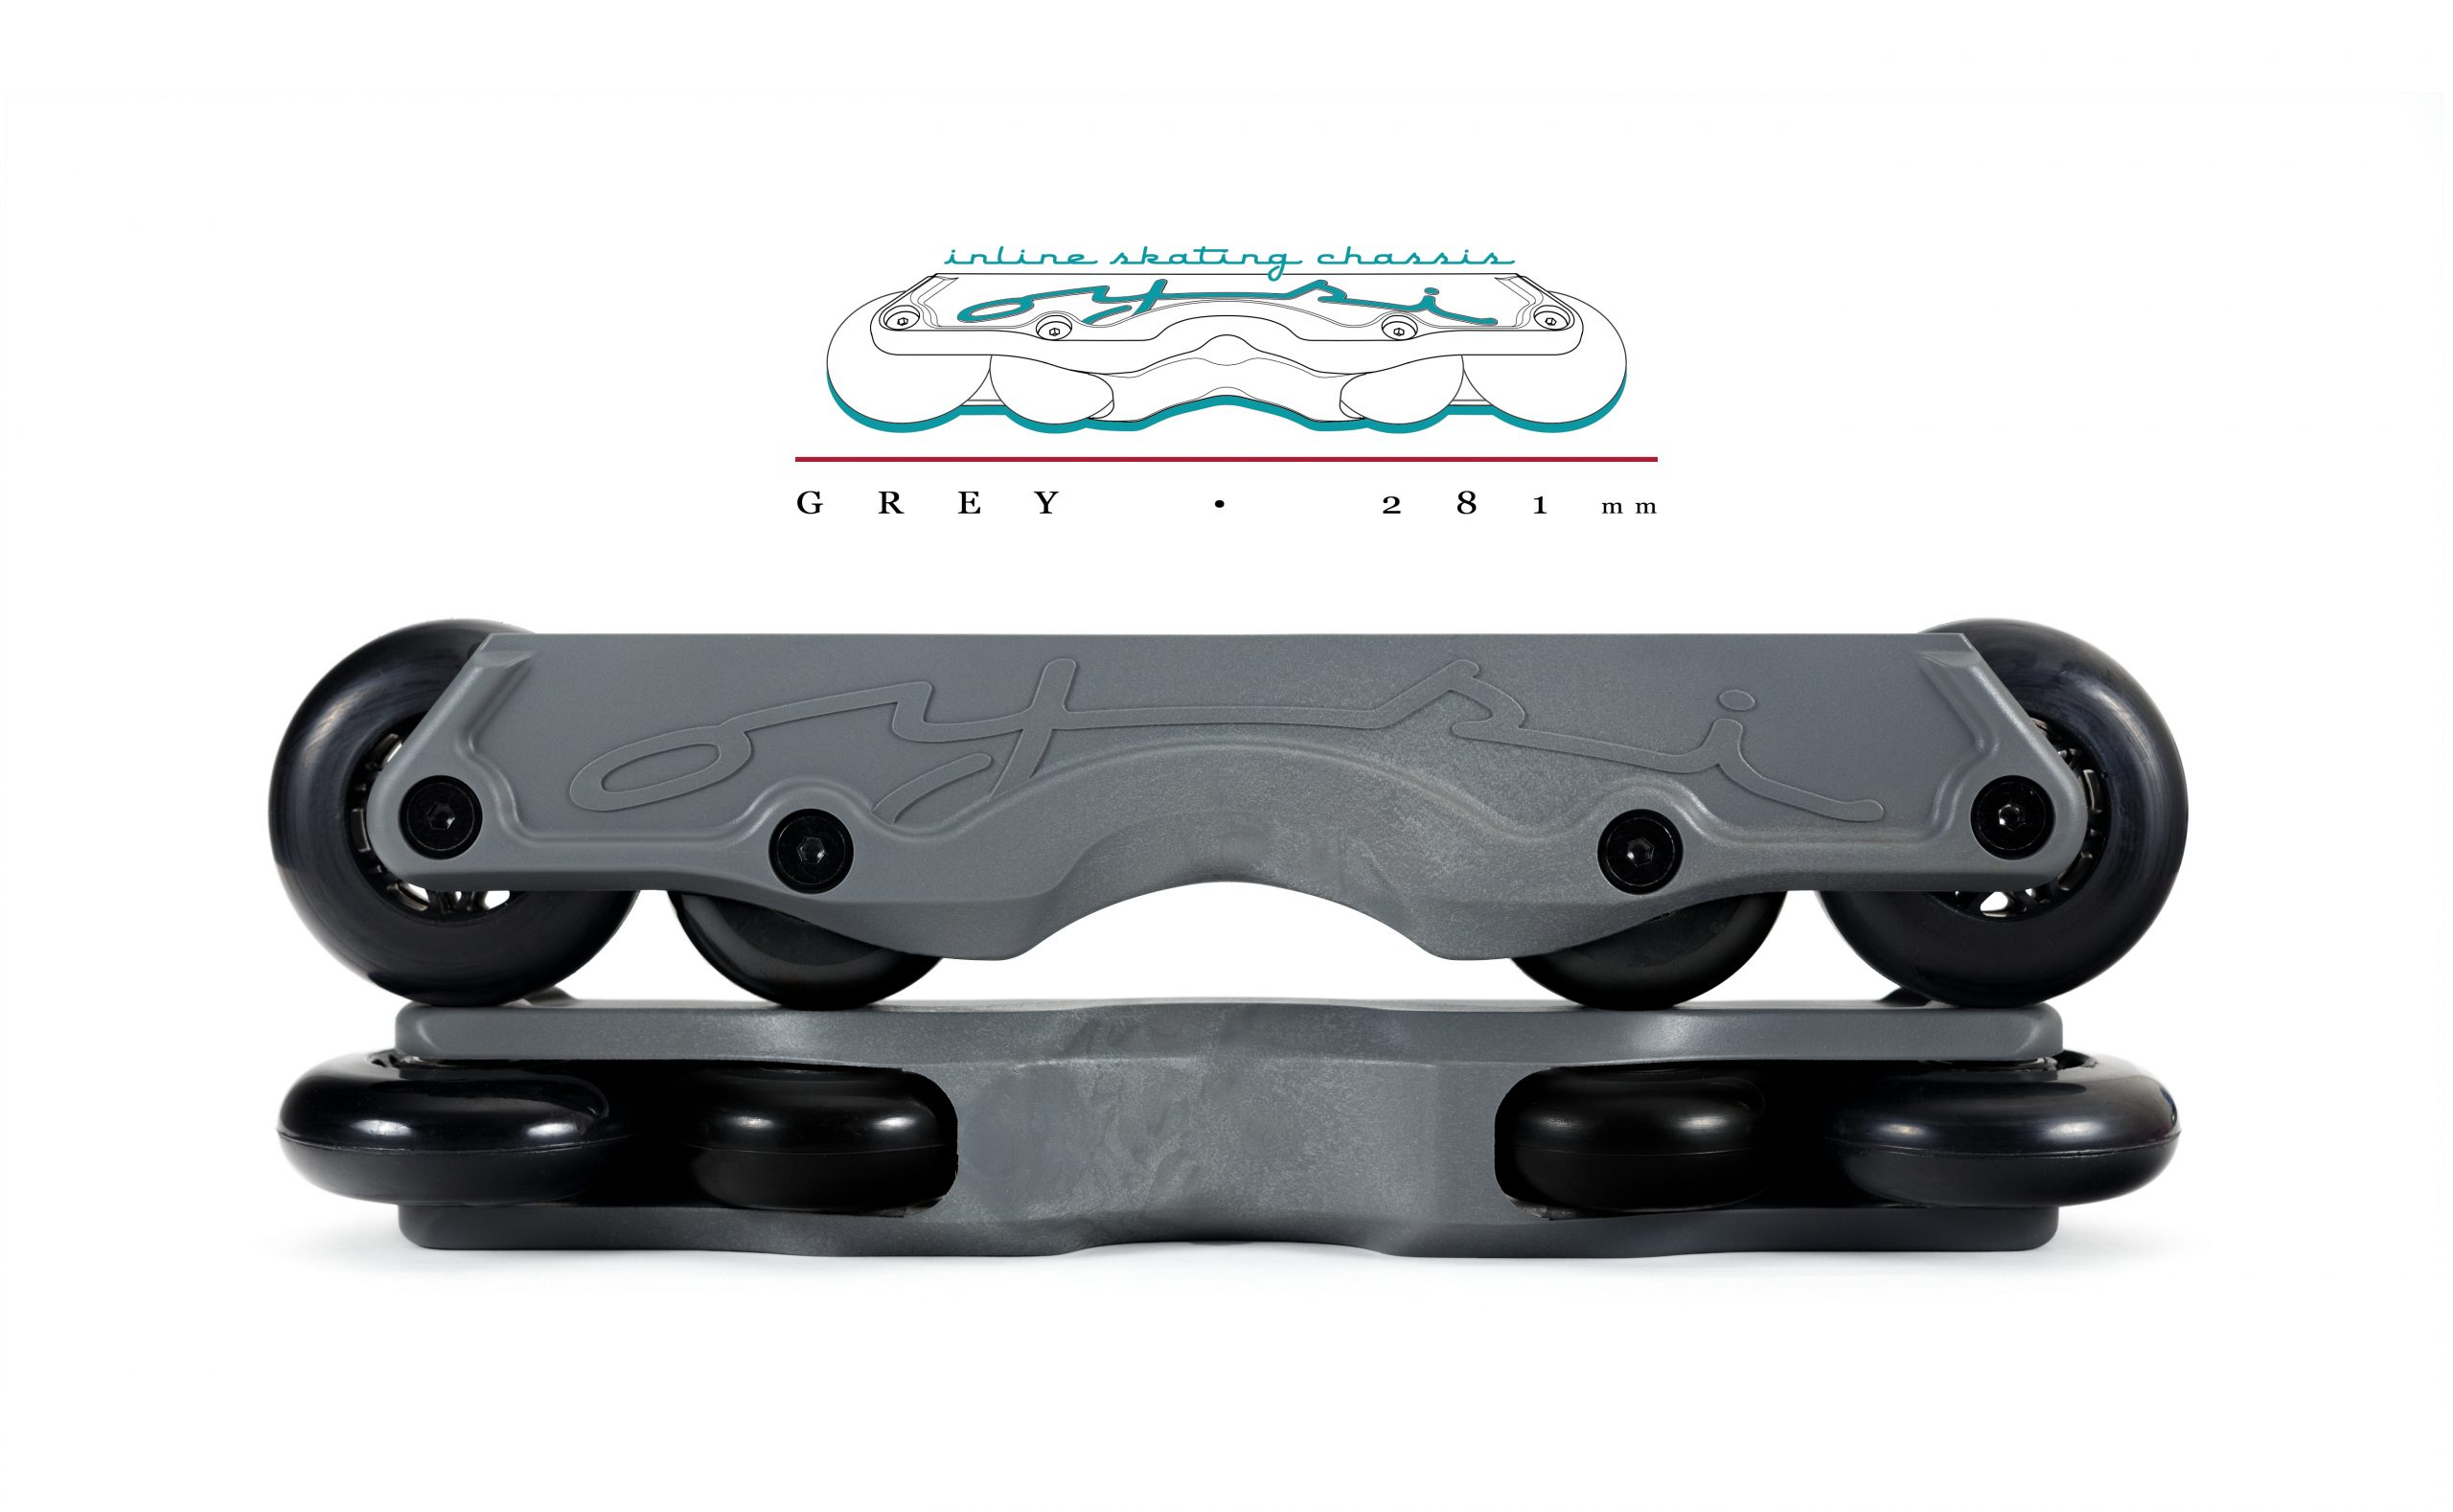 OISC Oysi Inline Skating Chassis 72mm  Grey